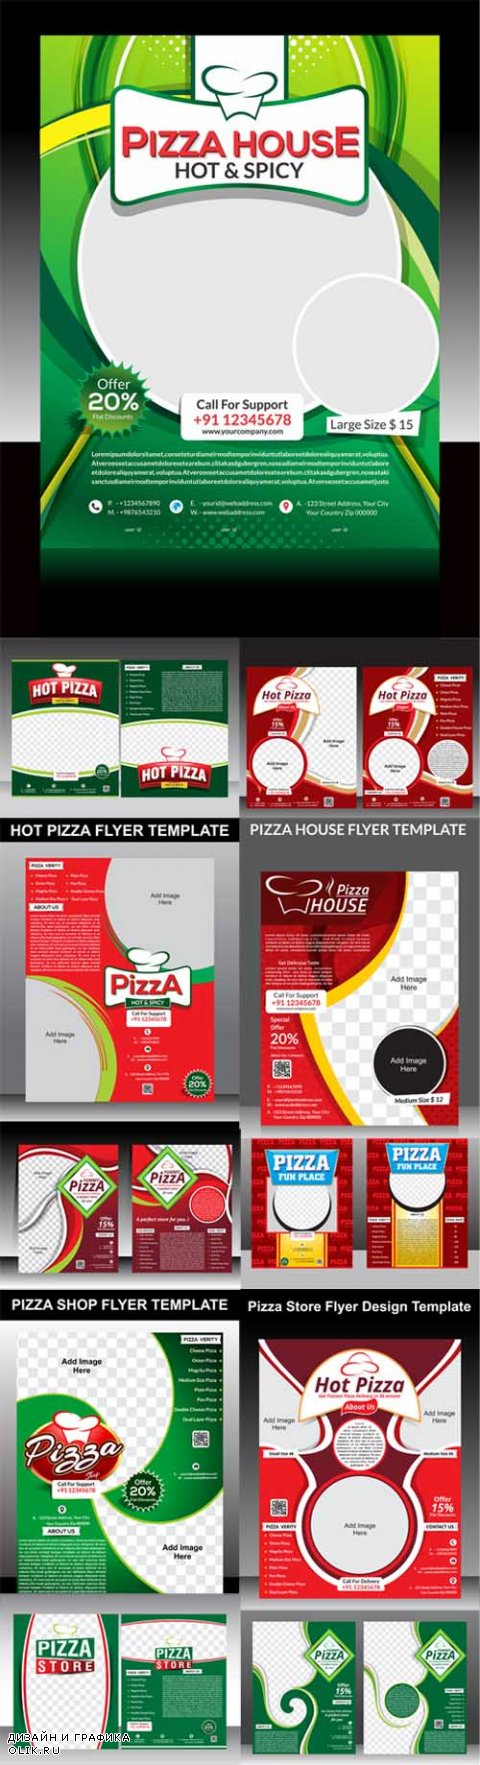 Vector Pizza Store Flyer Design Templates